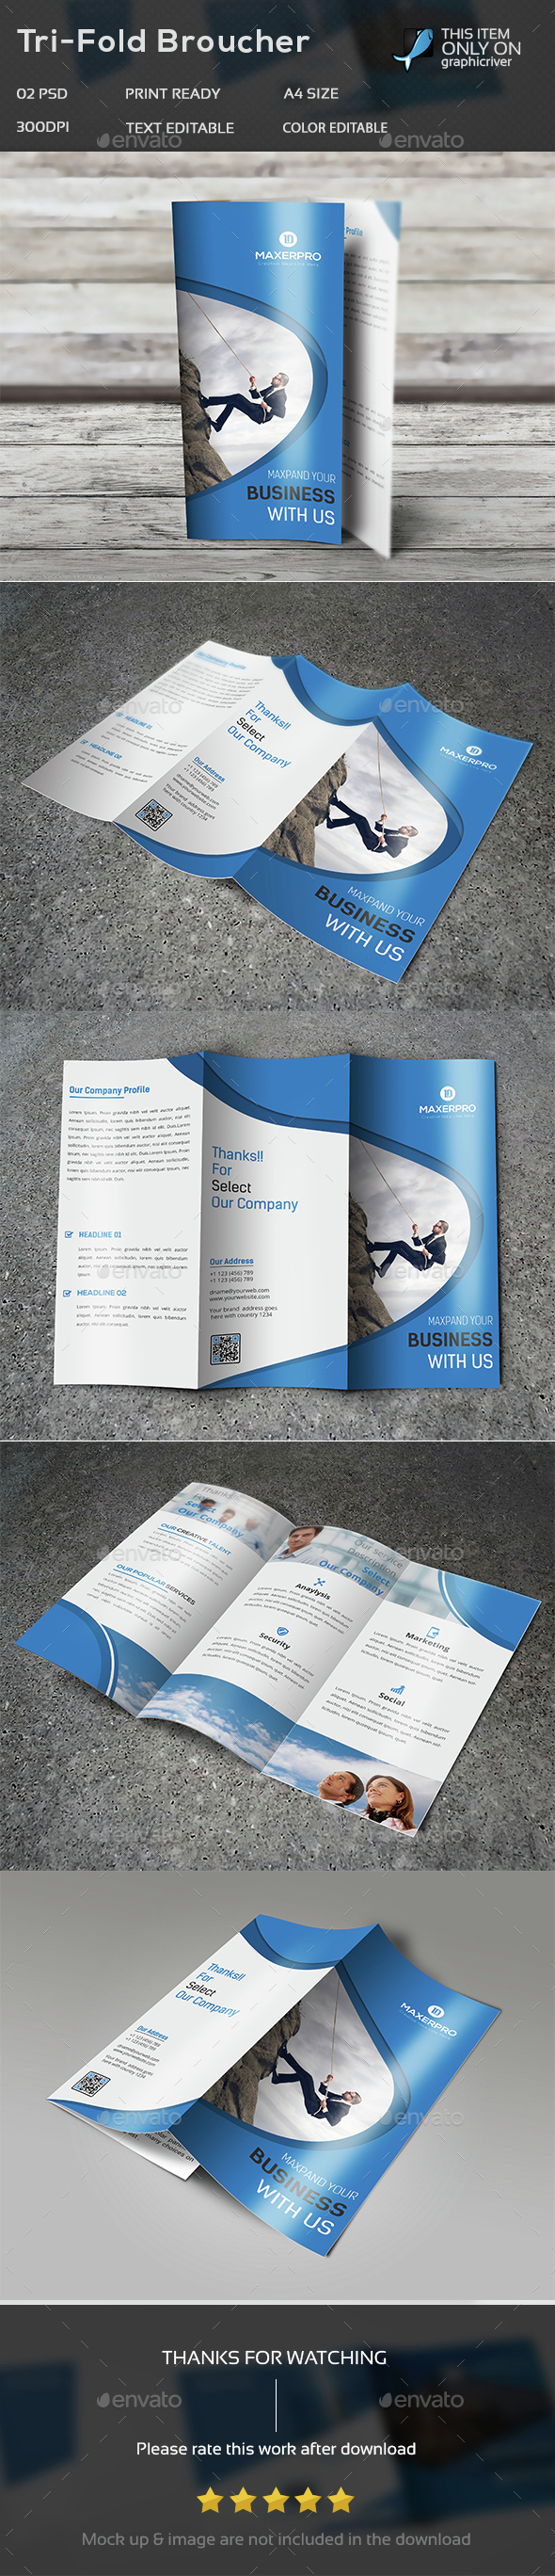 Creative Corporate Trifold Brochure Template -18 - Brochures Print Templates